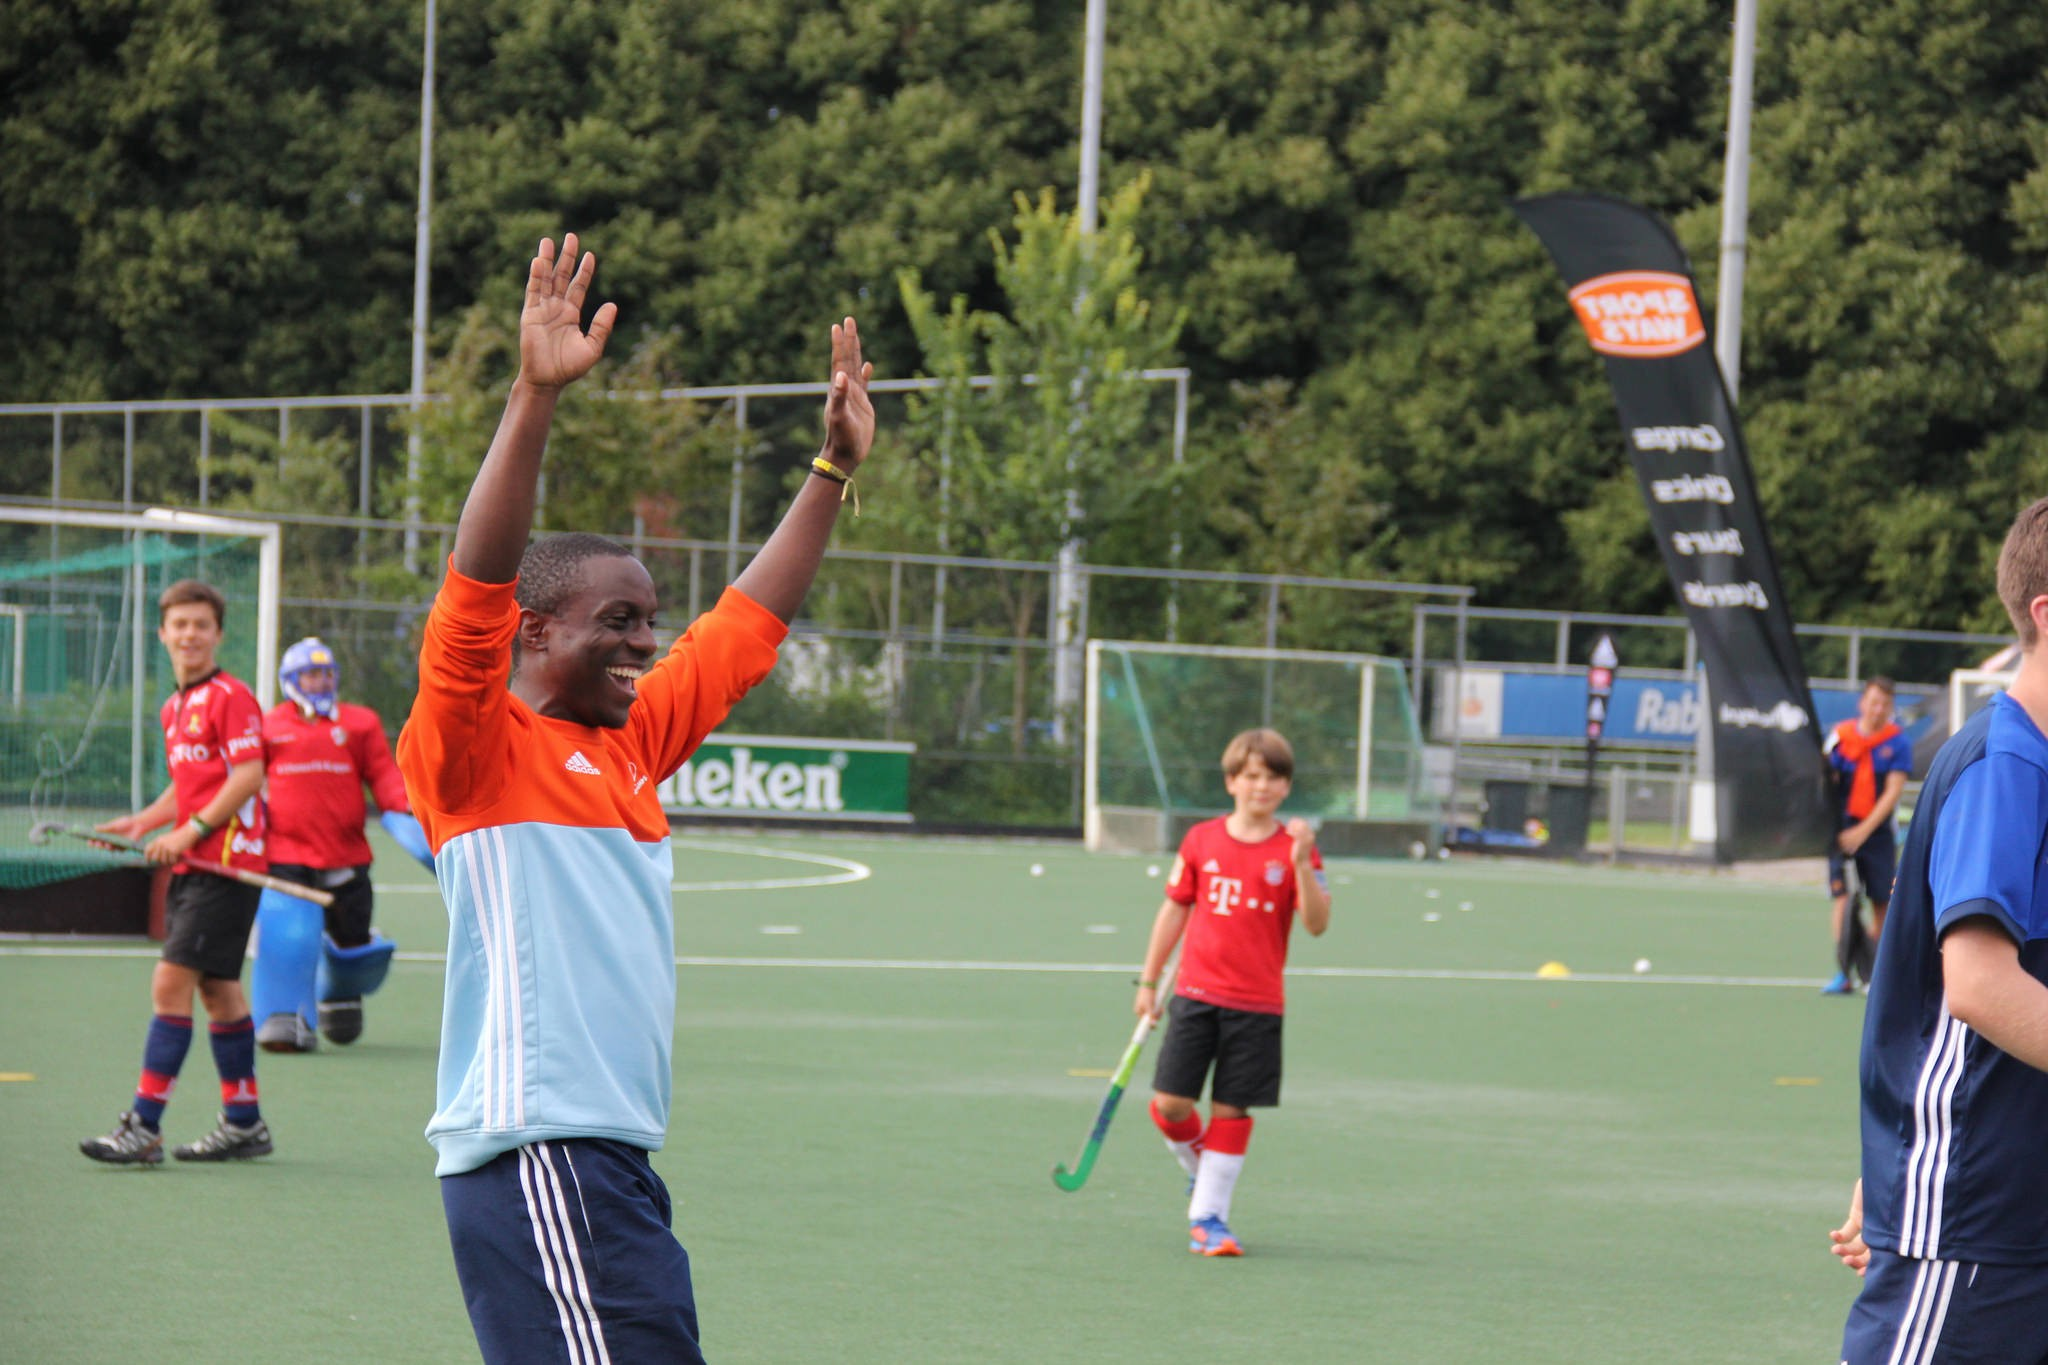 Ulemu's Hockey Dream in the Netherlands